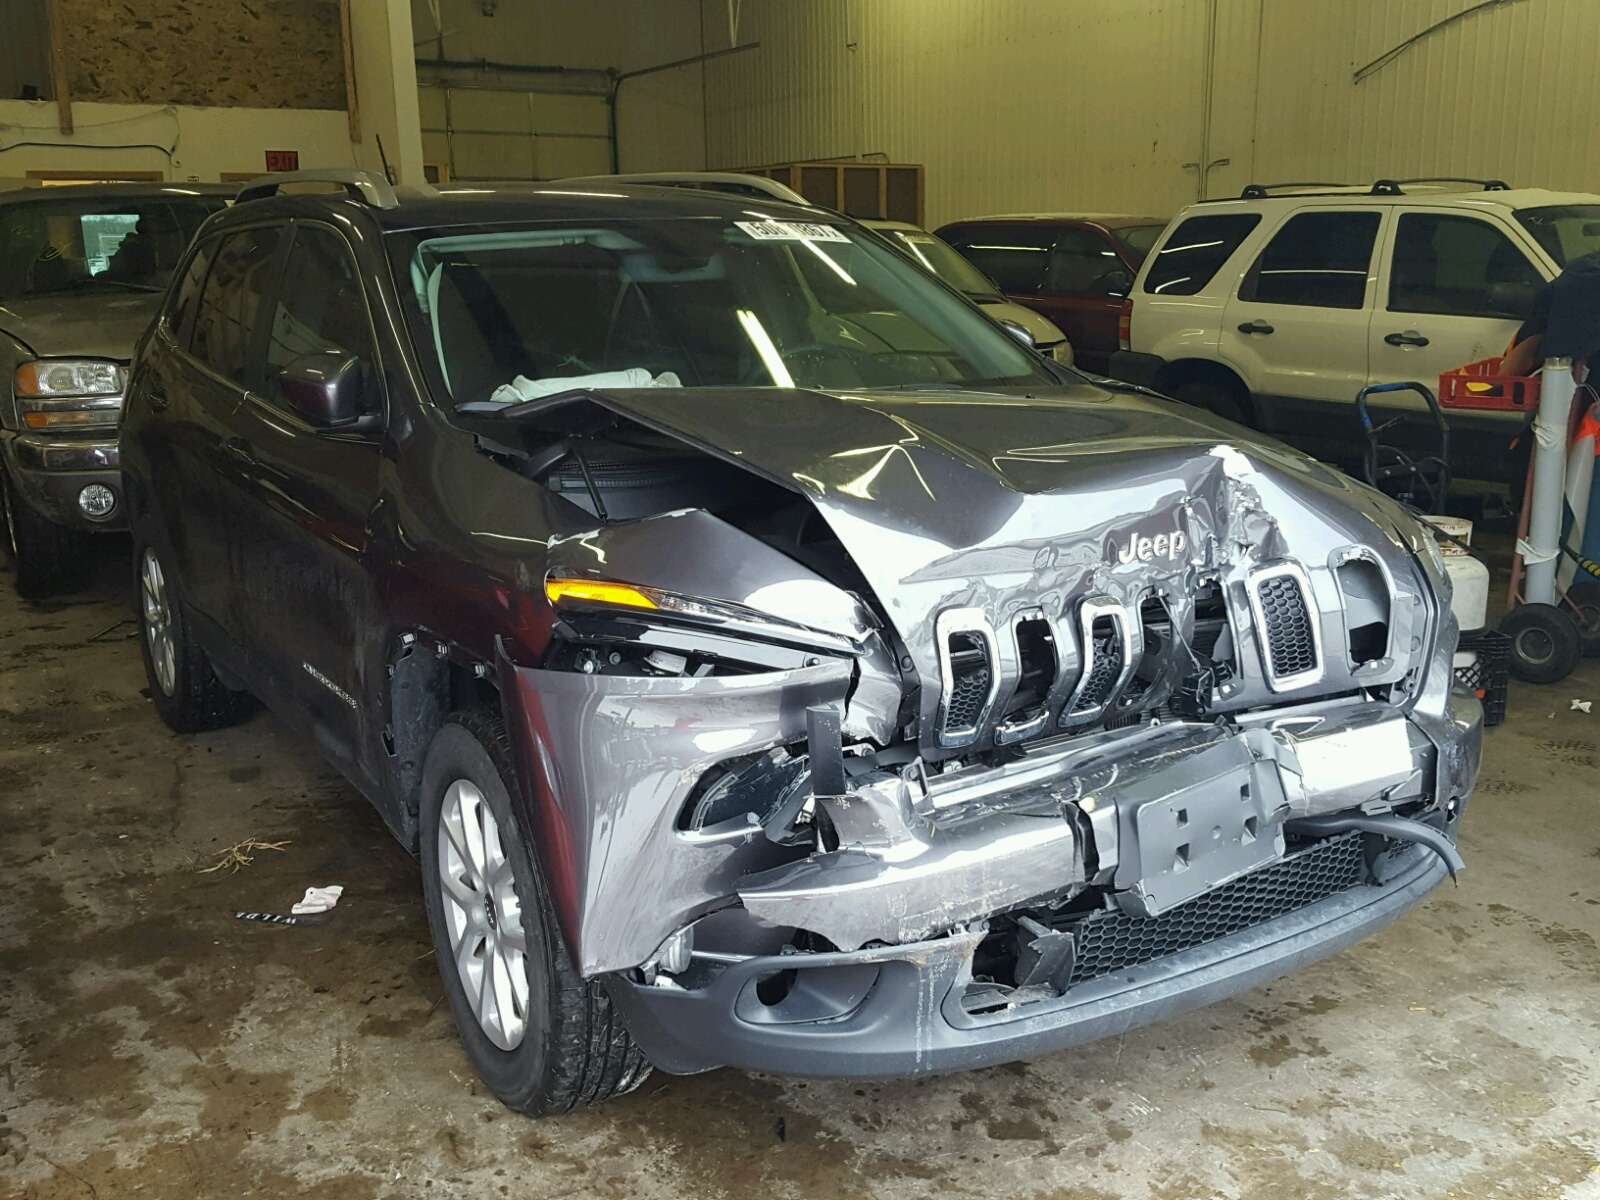 Auto Auction Ended on VIN 1C4PJMCB1HW 2017 JEEP CHEROKEE L in